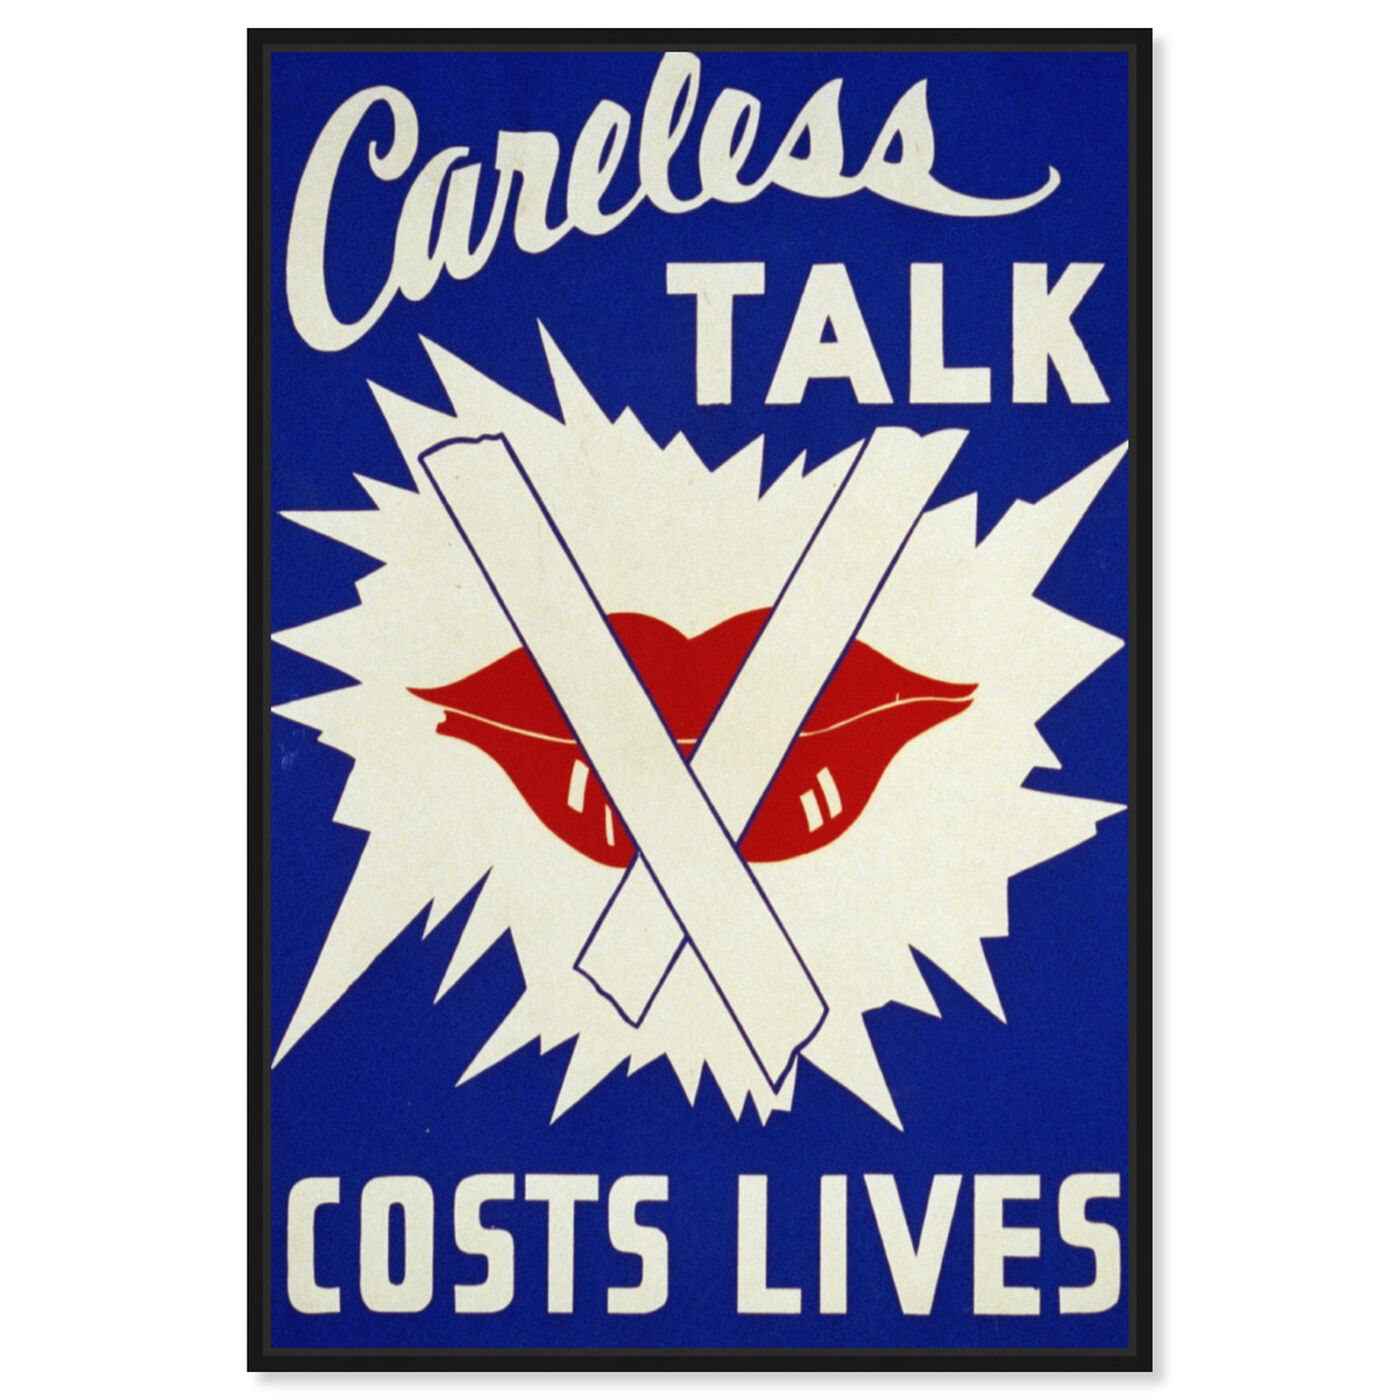 Front view of Careless Talk featuring advertising and posters art.